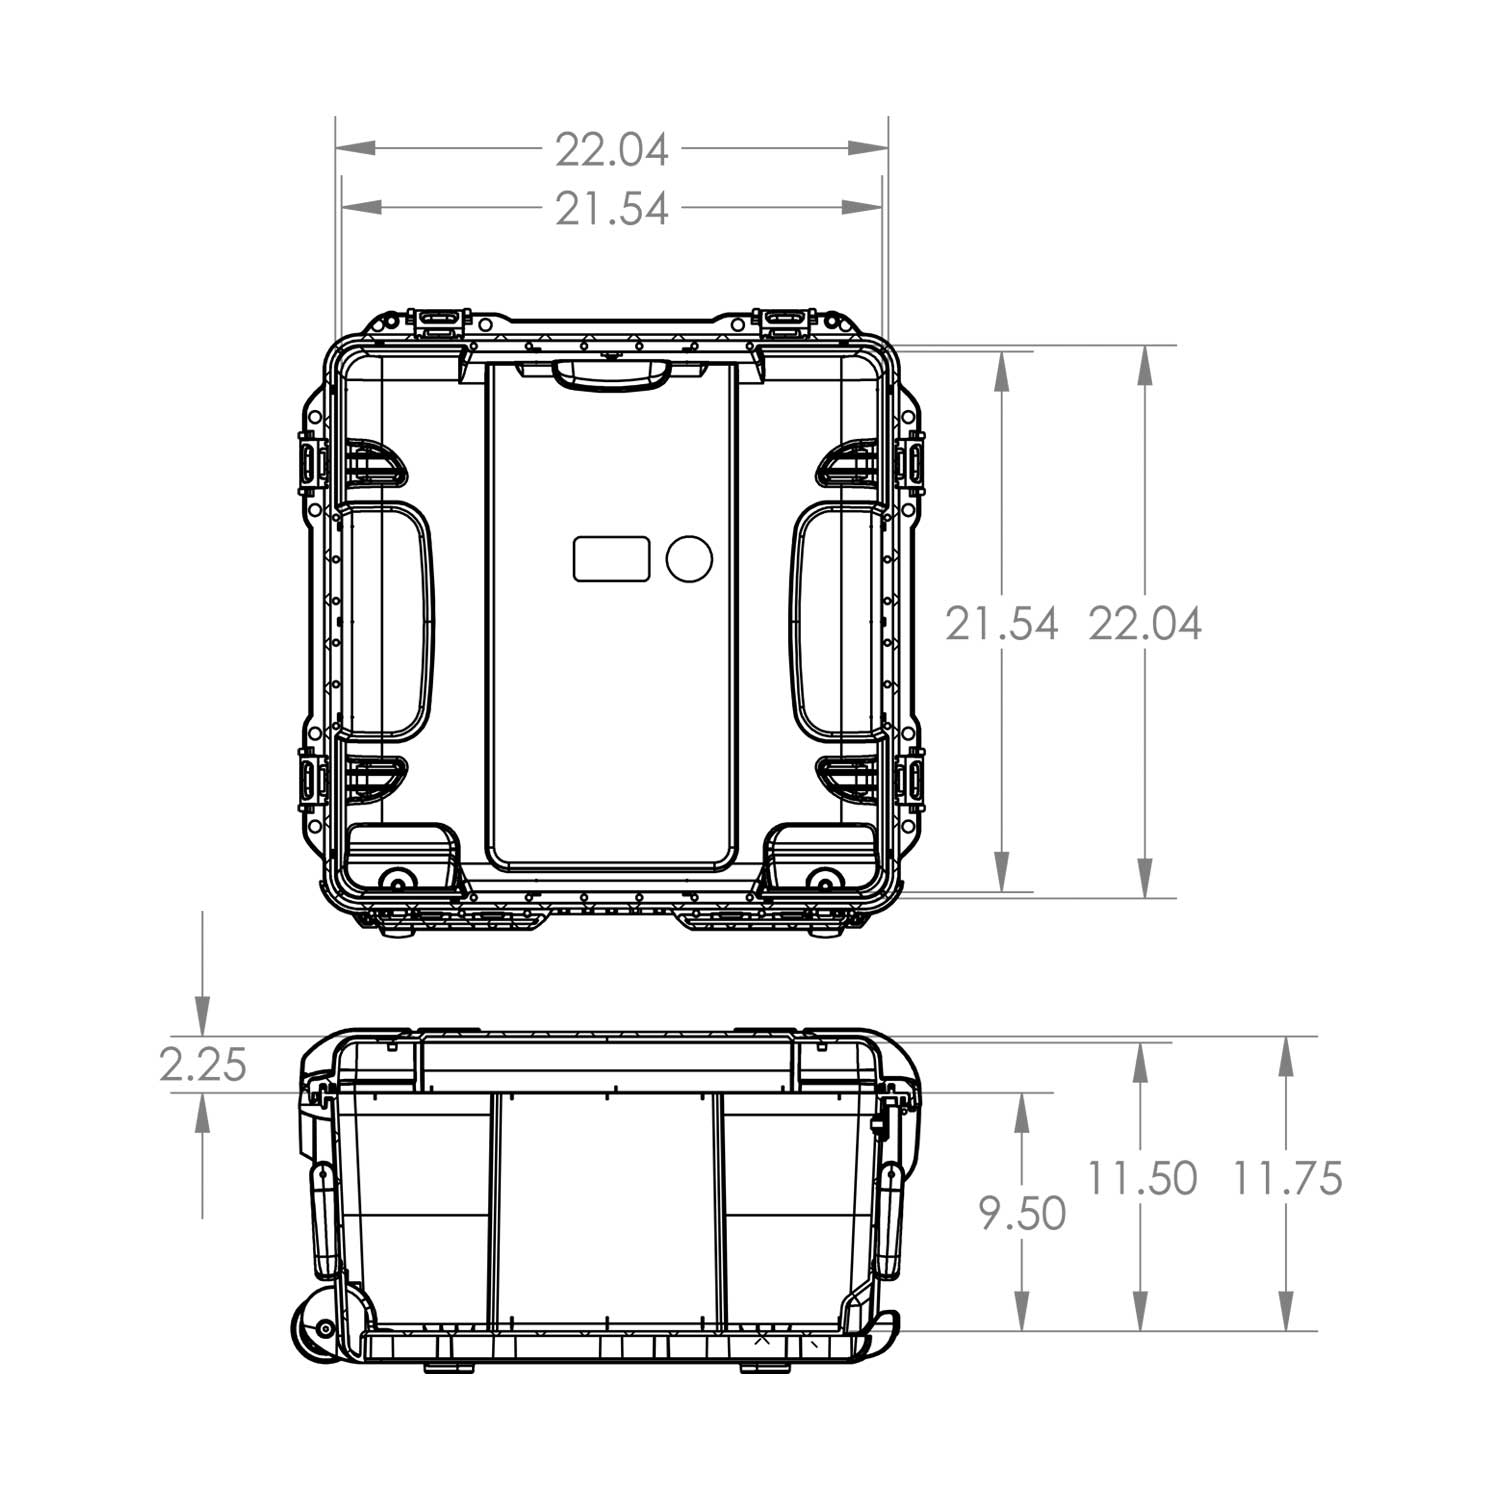 NANUK 968 Hard Case Specifications Dimensions